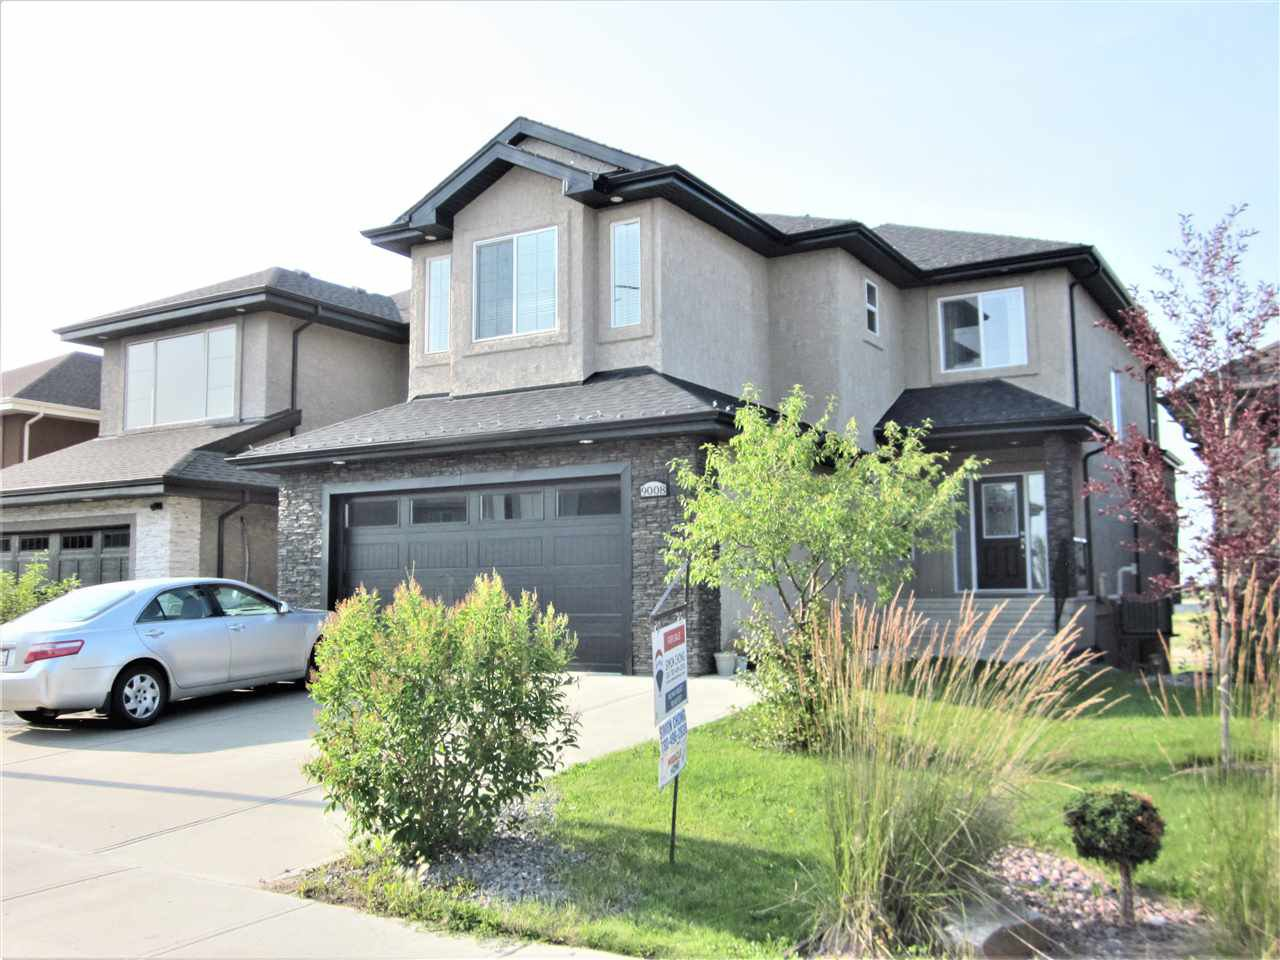 Main Photo: 9008 181 Avenue in Edmonton: Zone 28 House for sale : MLS®# E4167395